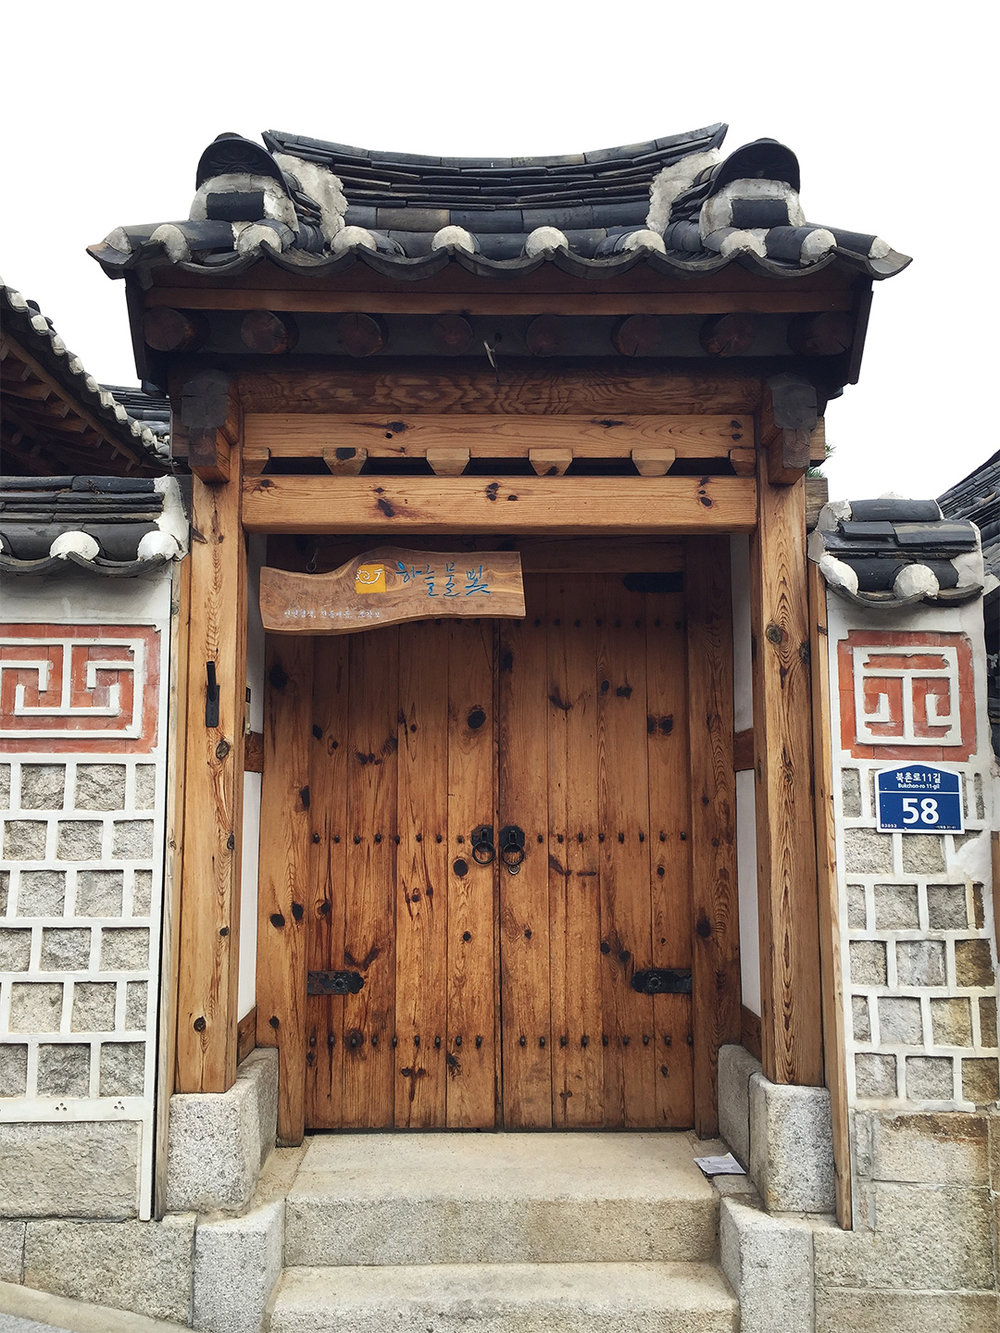 Beautiful traditional doors in Bukchon Hanok Village.